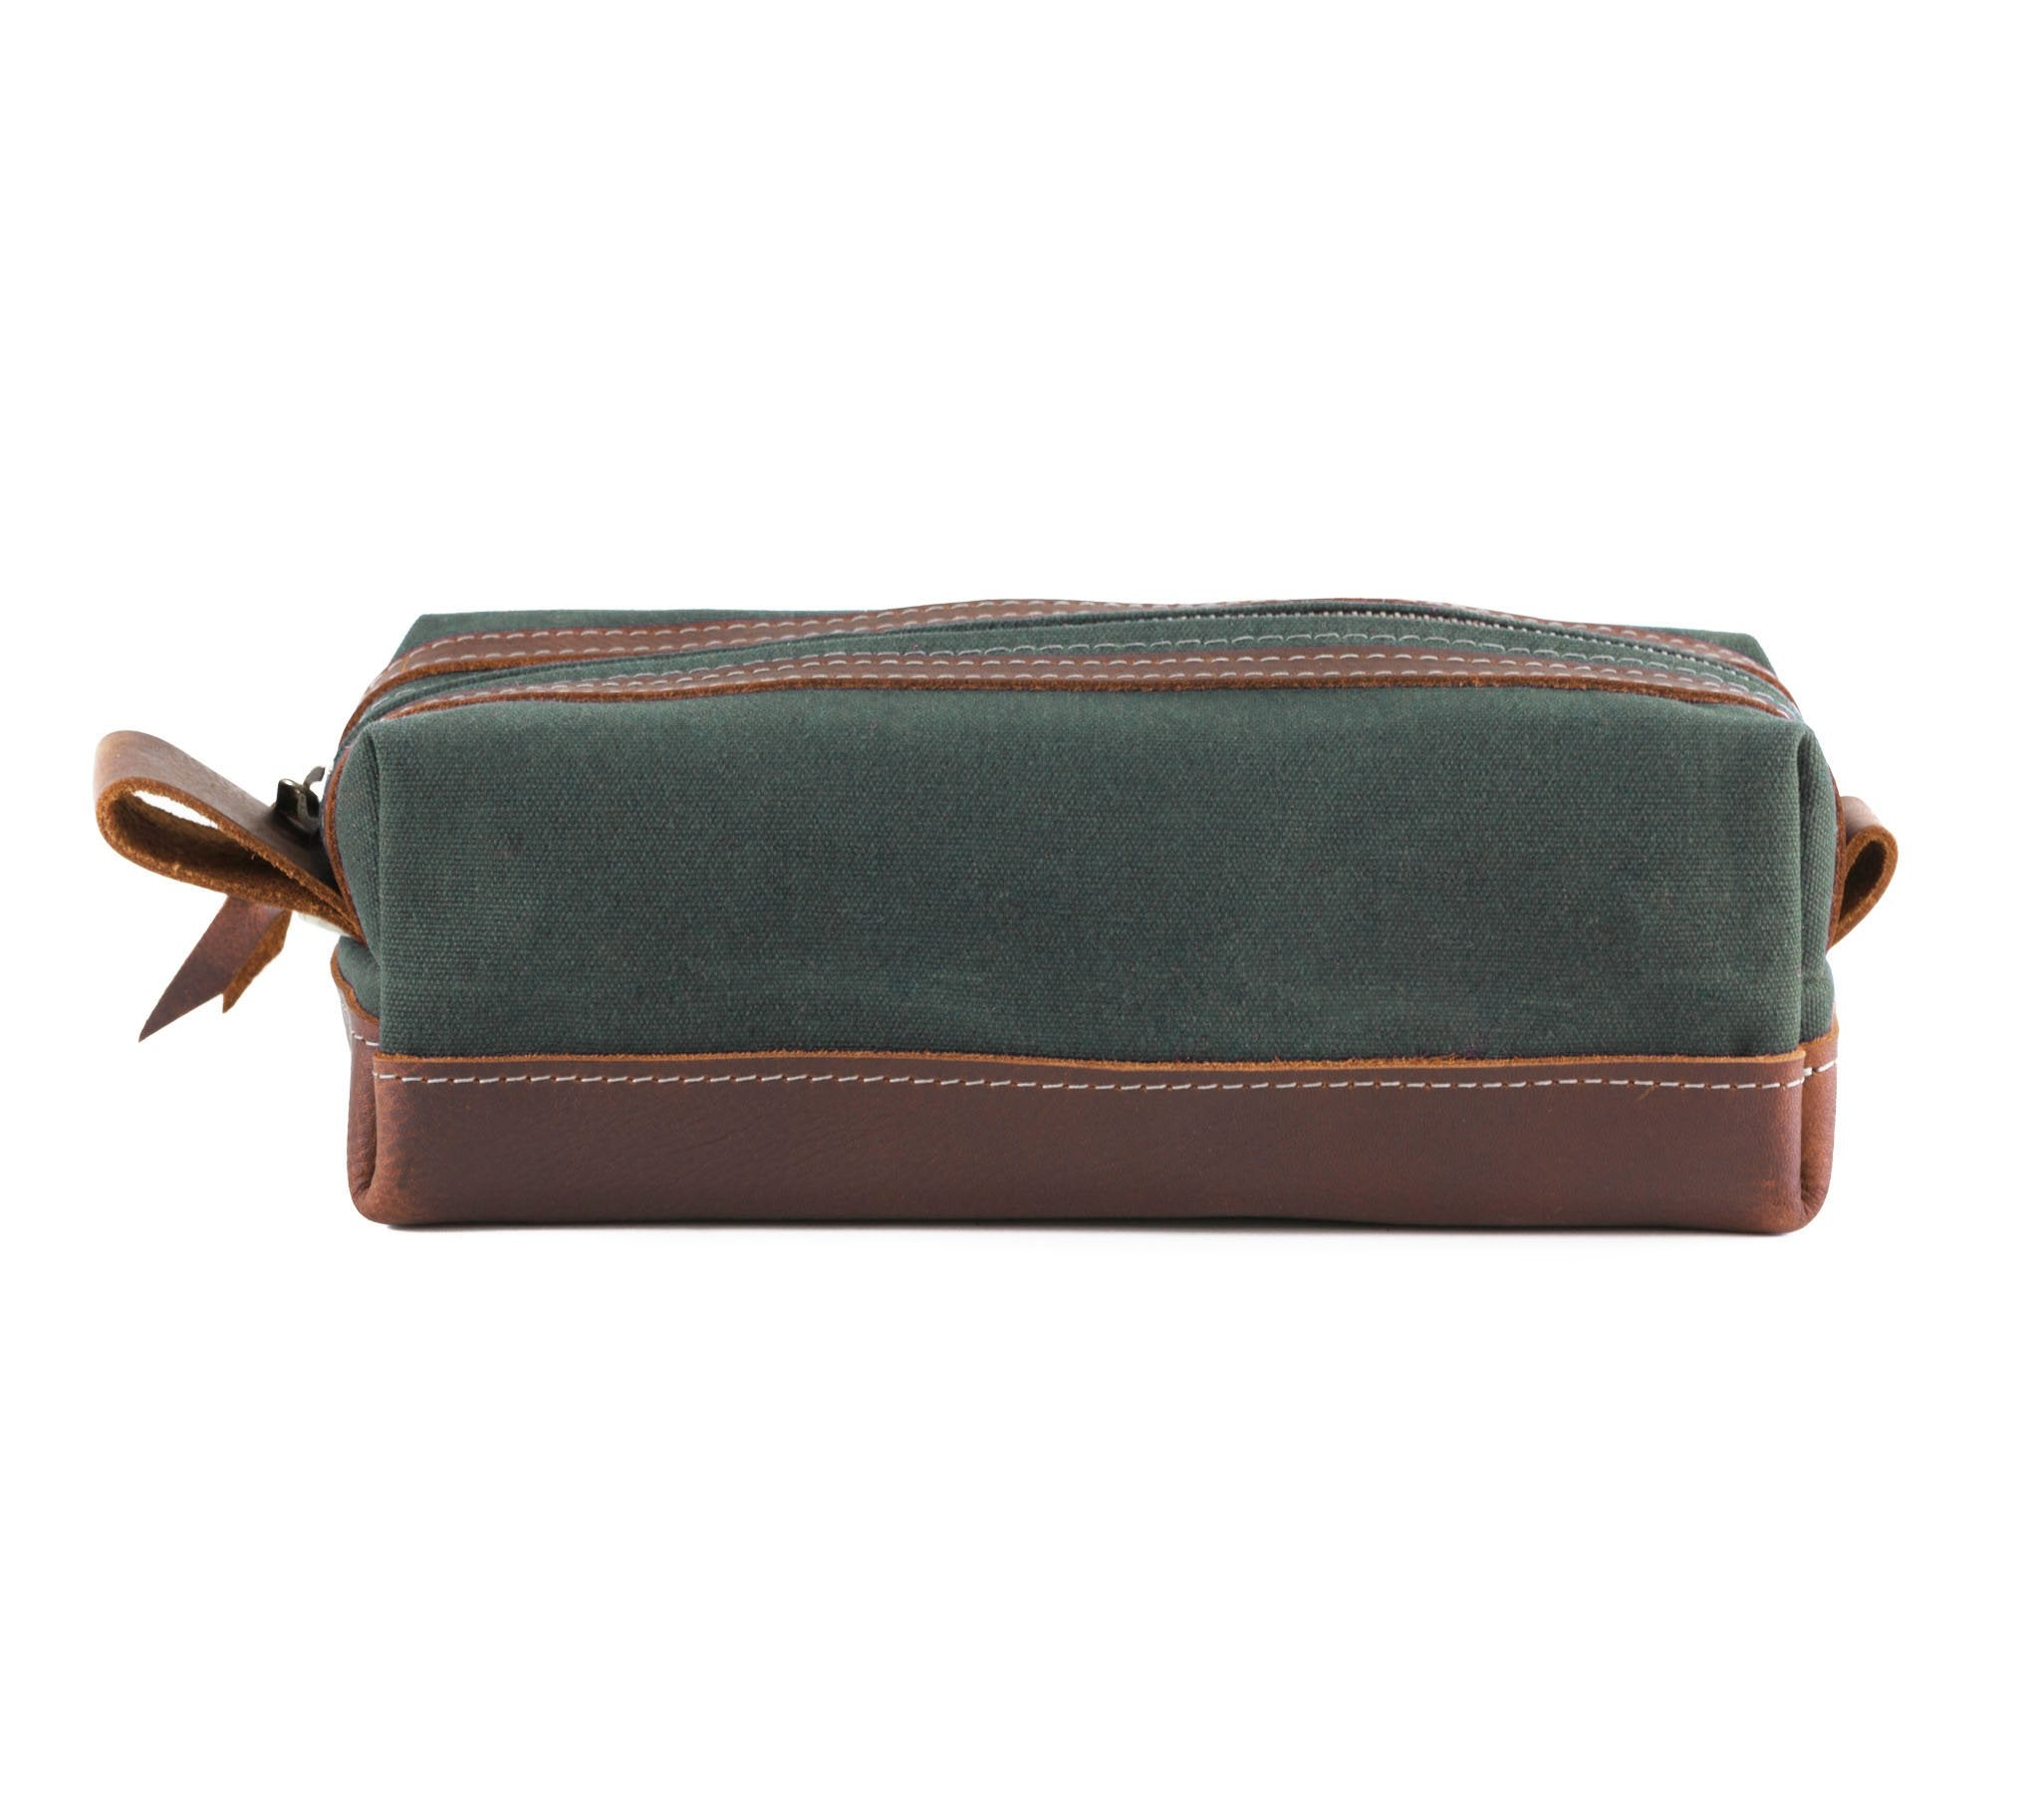 Green Waxed Canvas Toiletry Bag